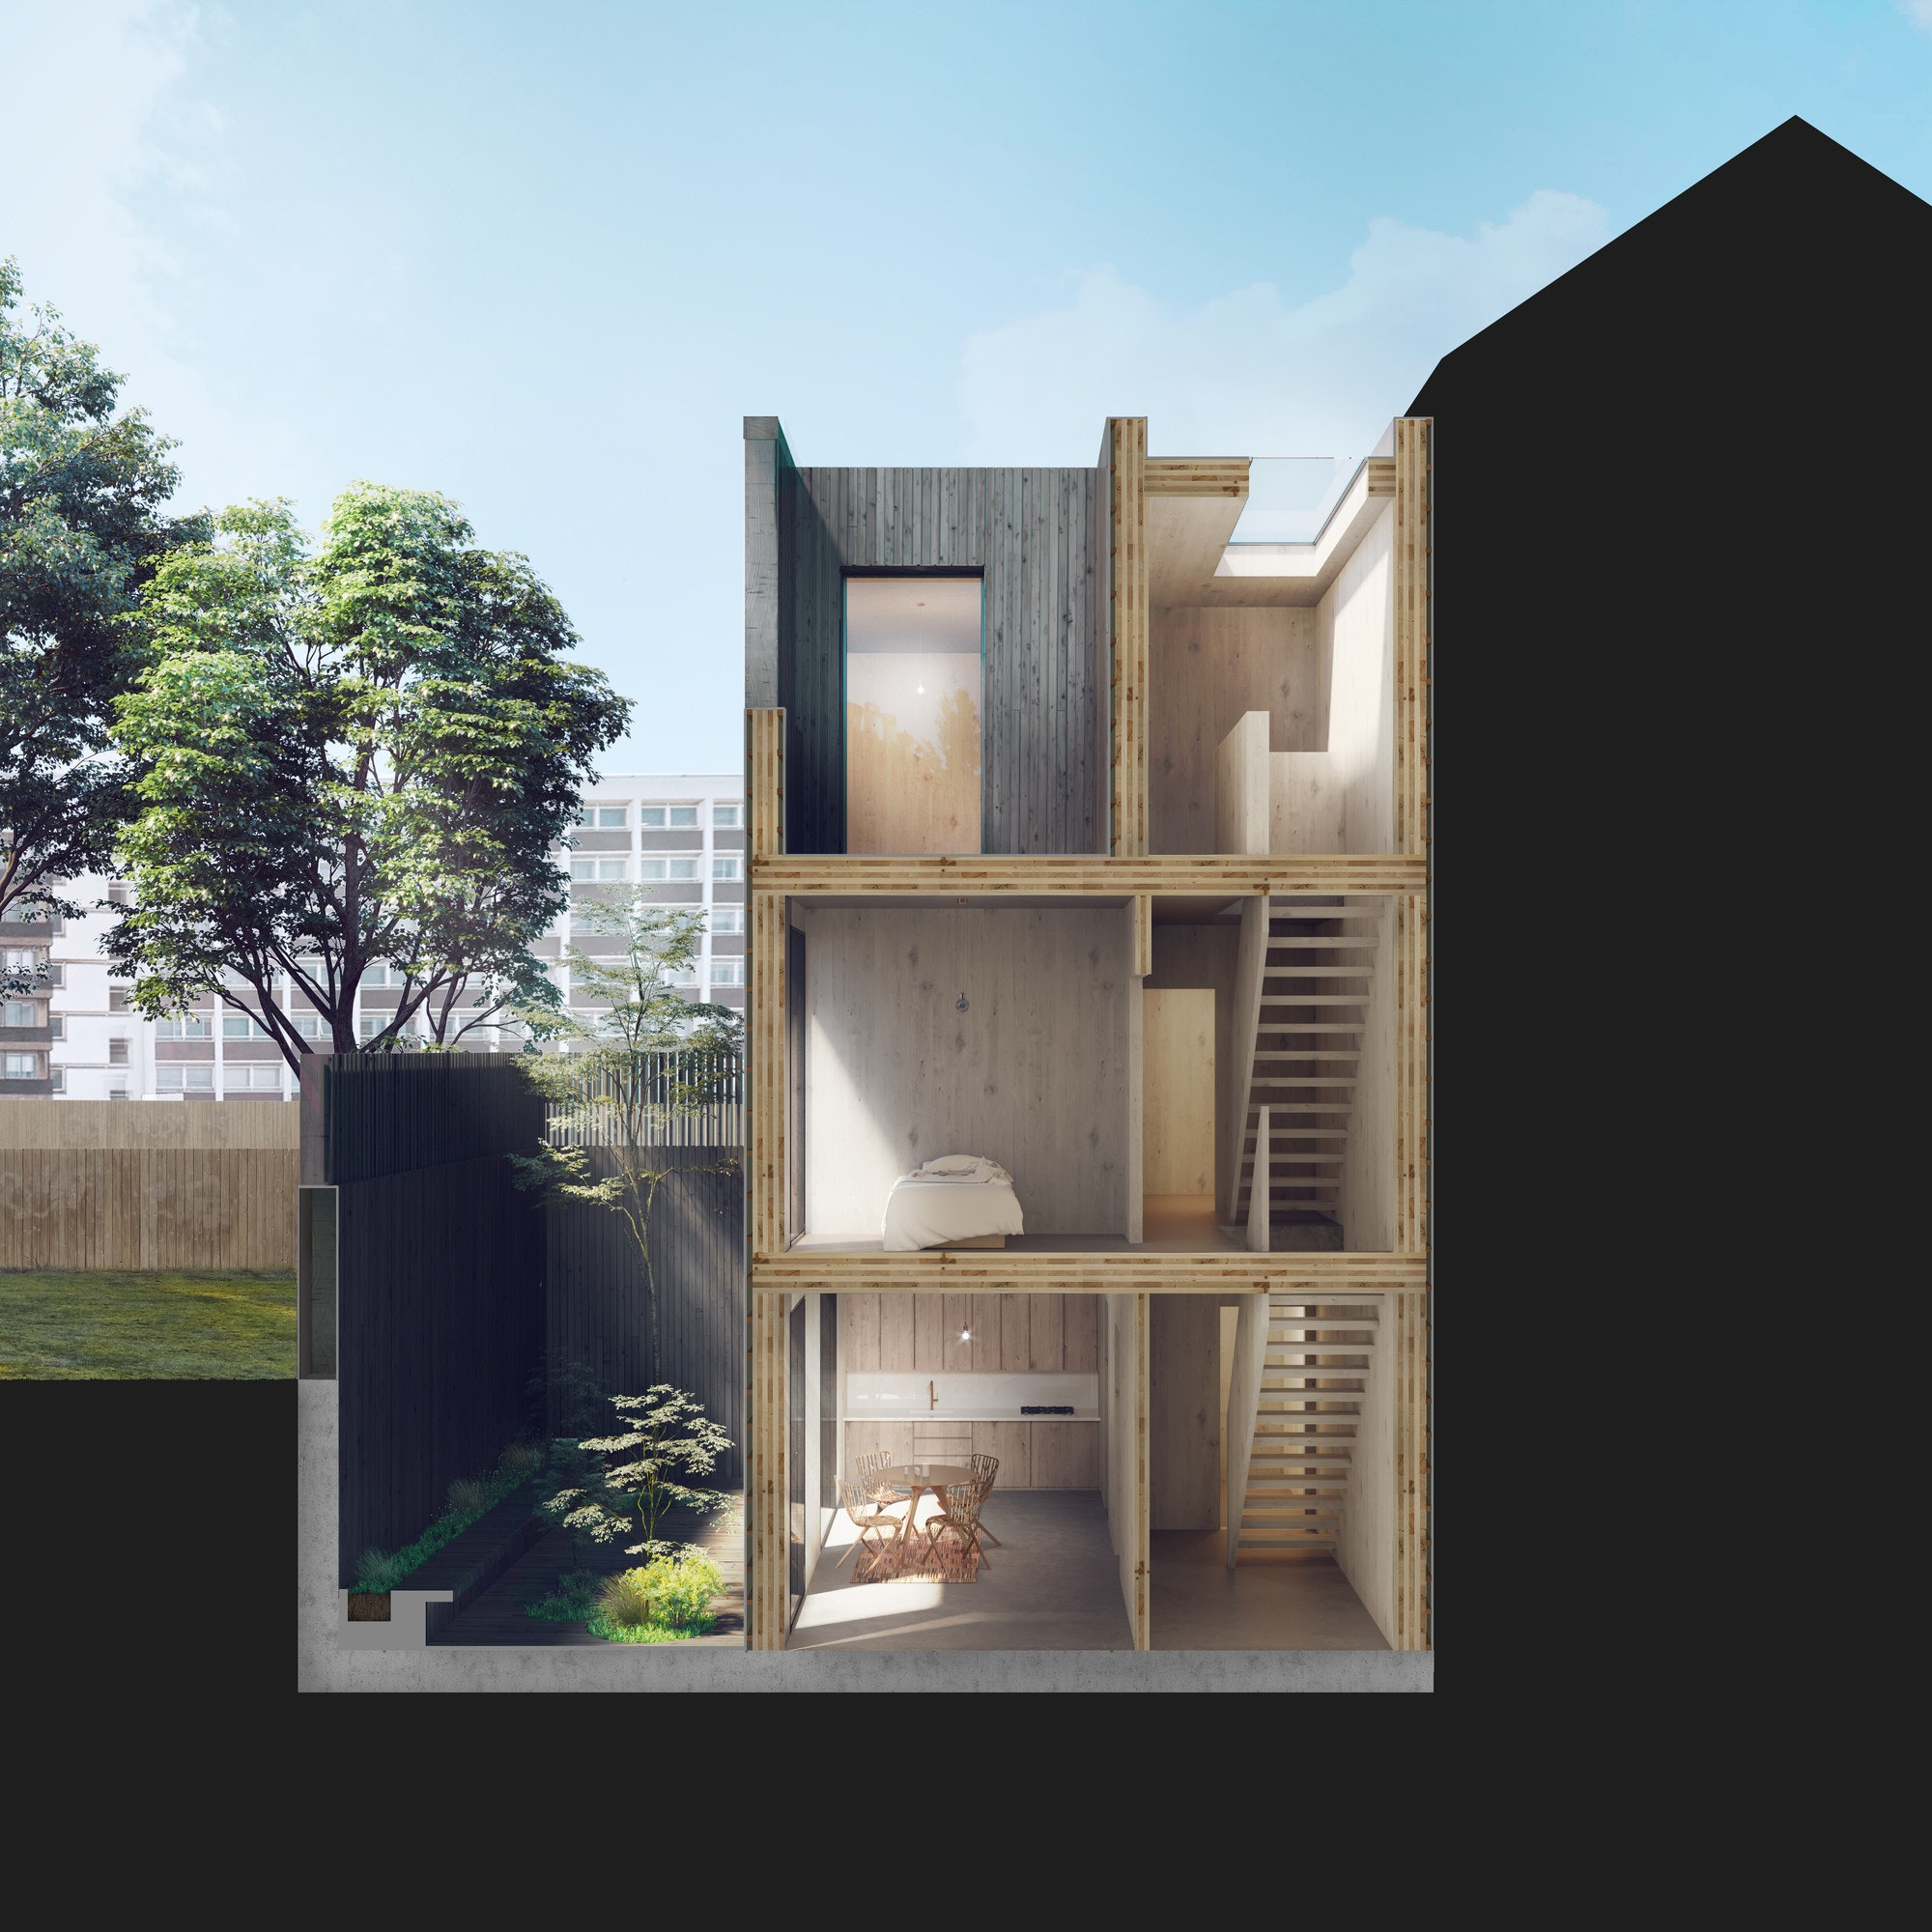 Modular home design by Adjaye Associates for Cube Haus. Image: Adjaye Associates. & Cube Haus commissions top architects to design modular affordable ...